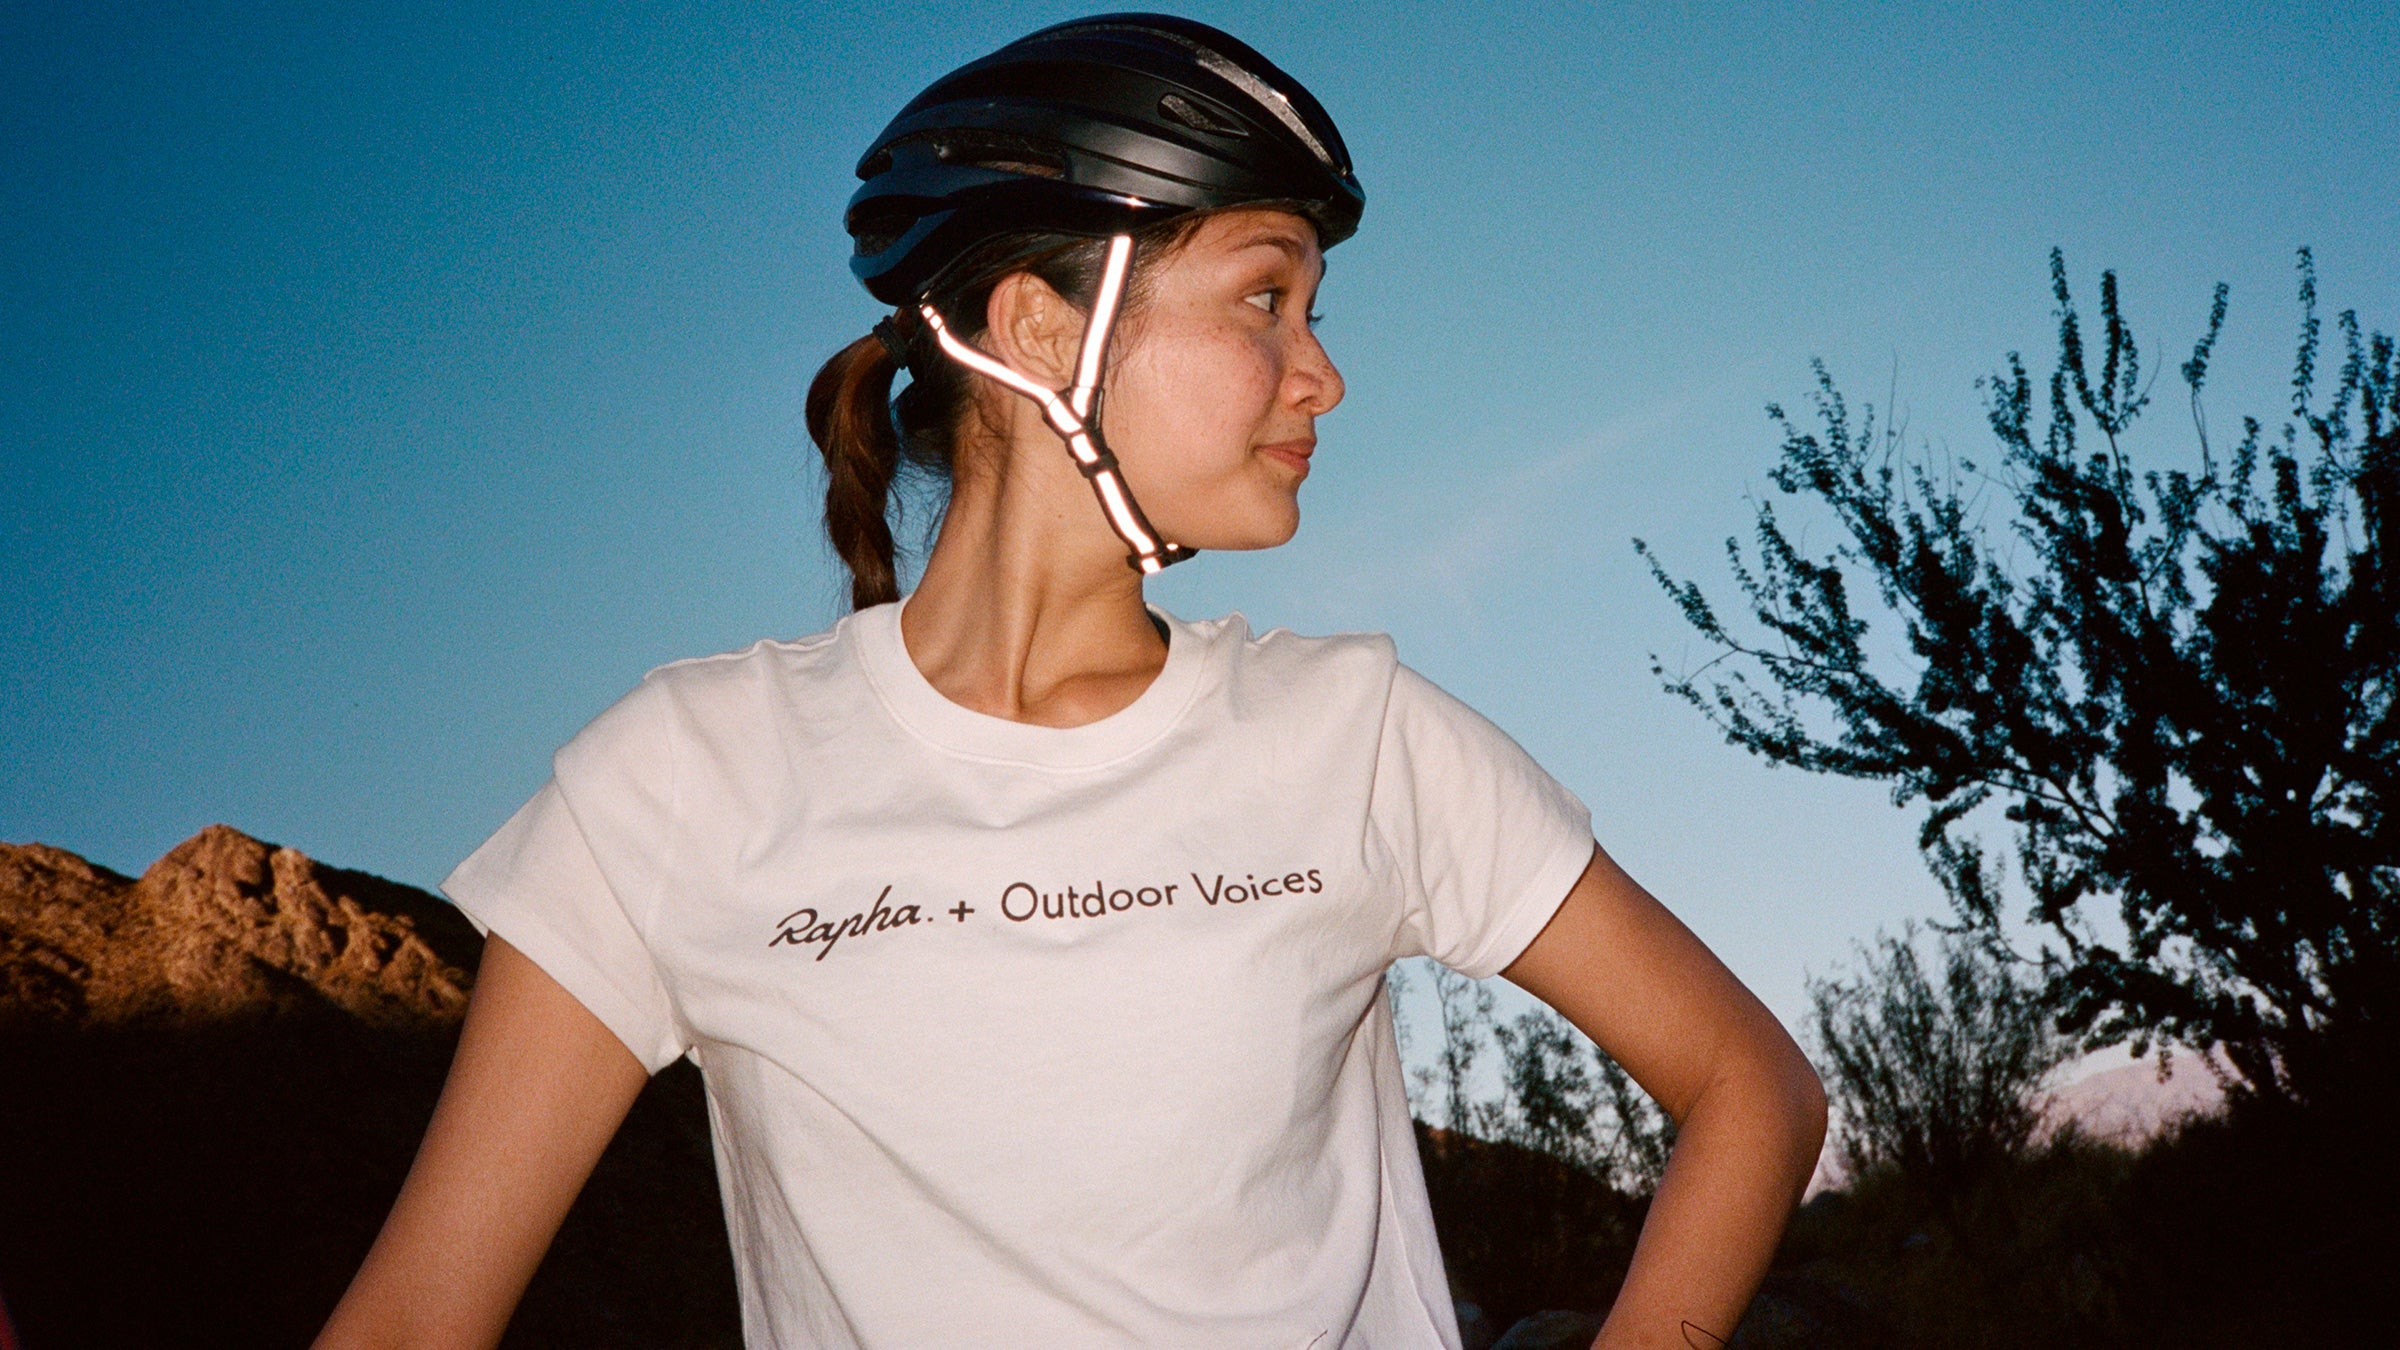 Rapha Outdoor Voices tee